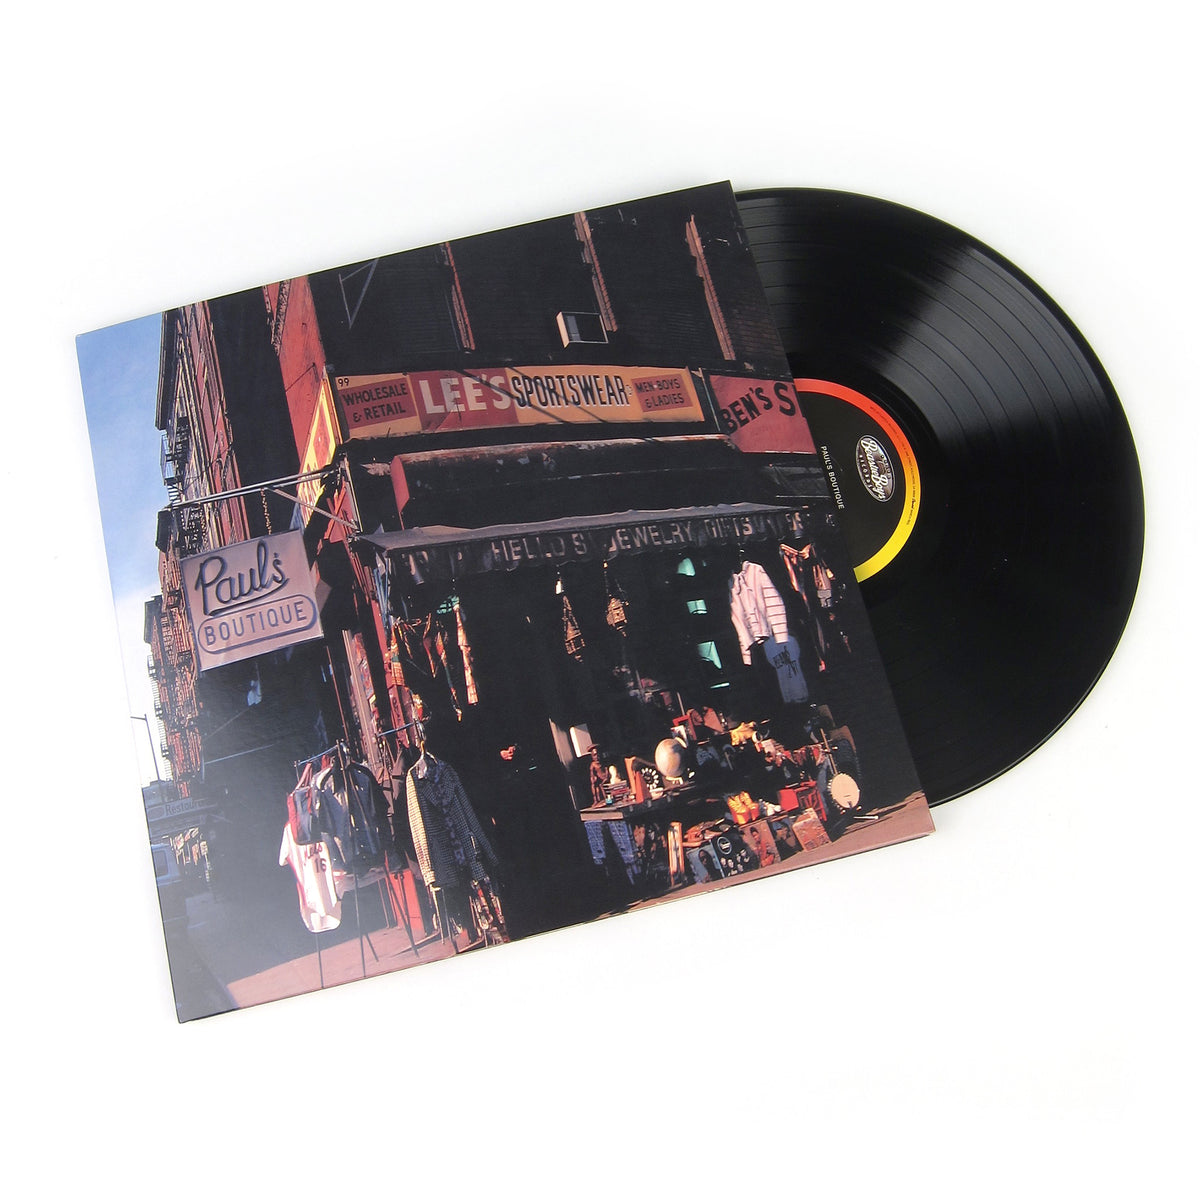 Beastie Boys: 180g Vinyl LP Album Pack (Paul's Boutique, Check Your Head, Ill Communication)